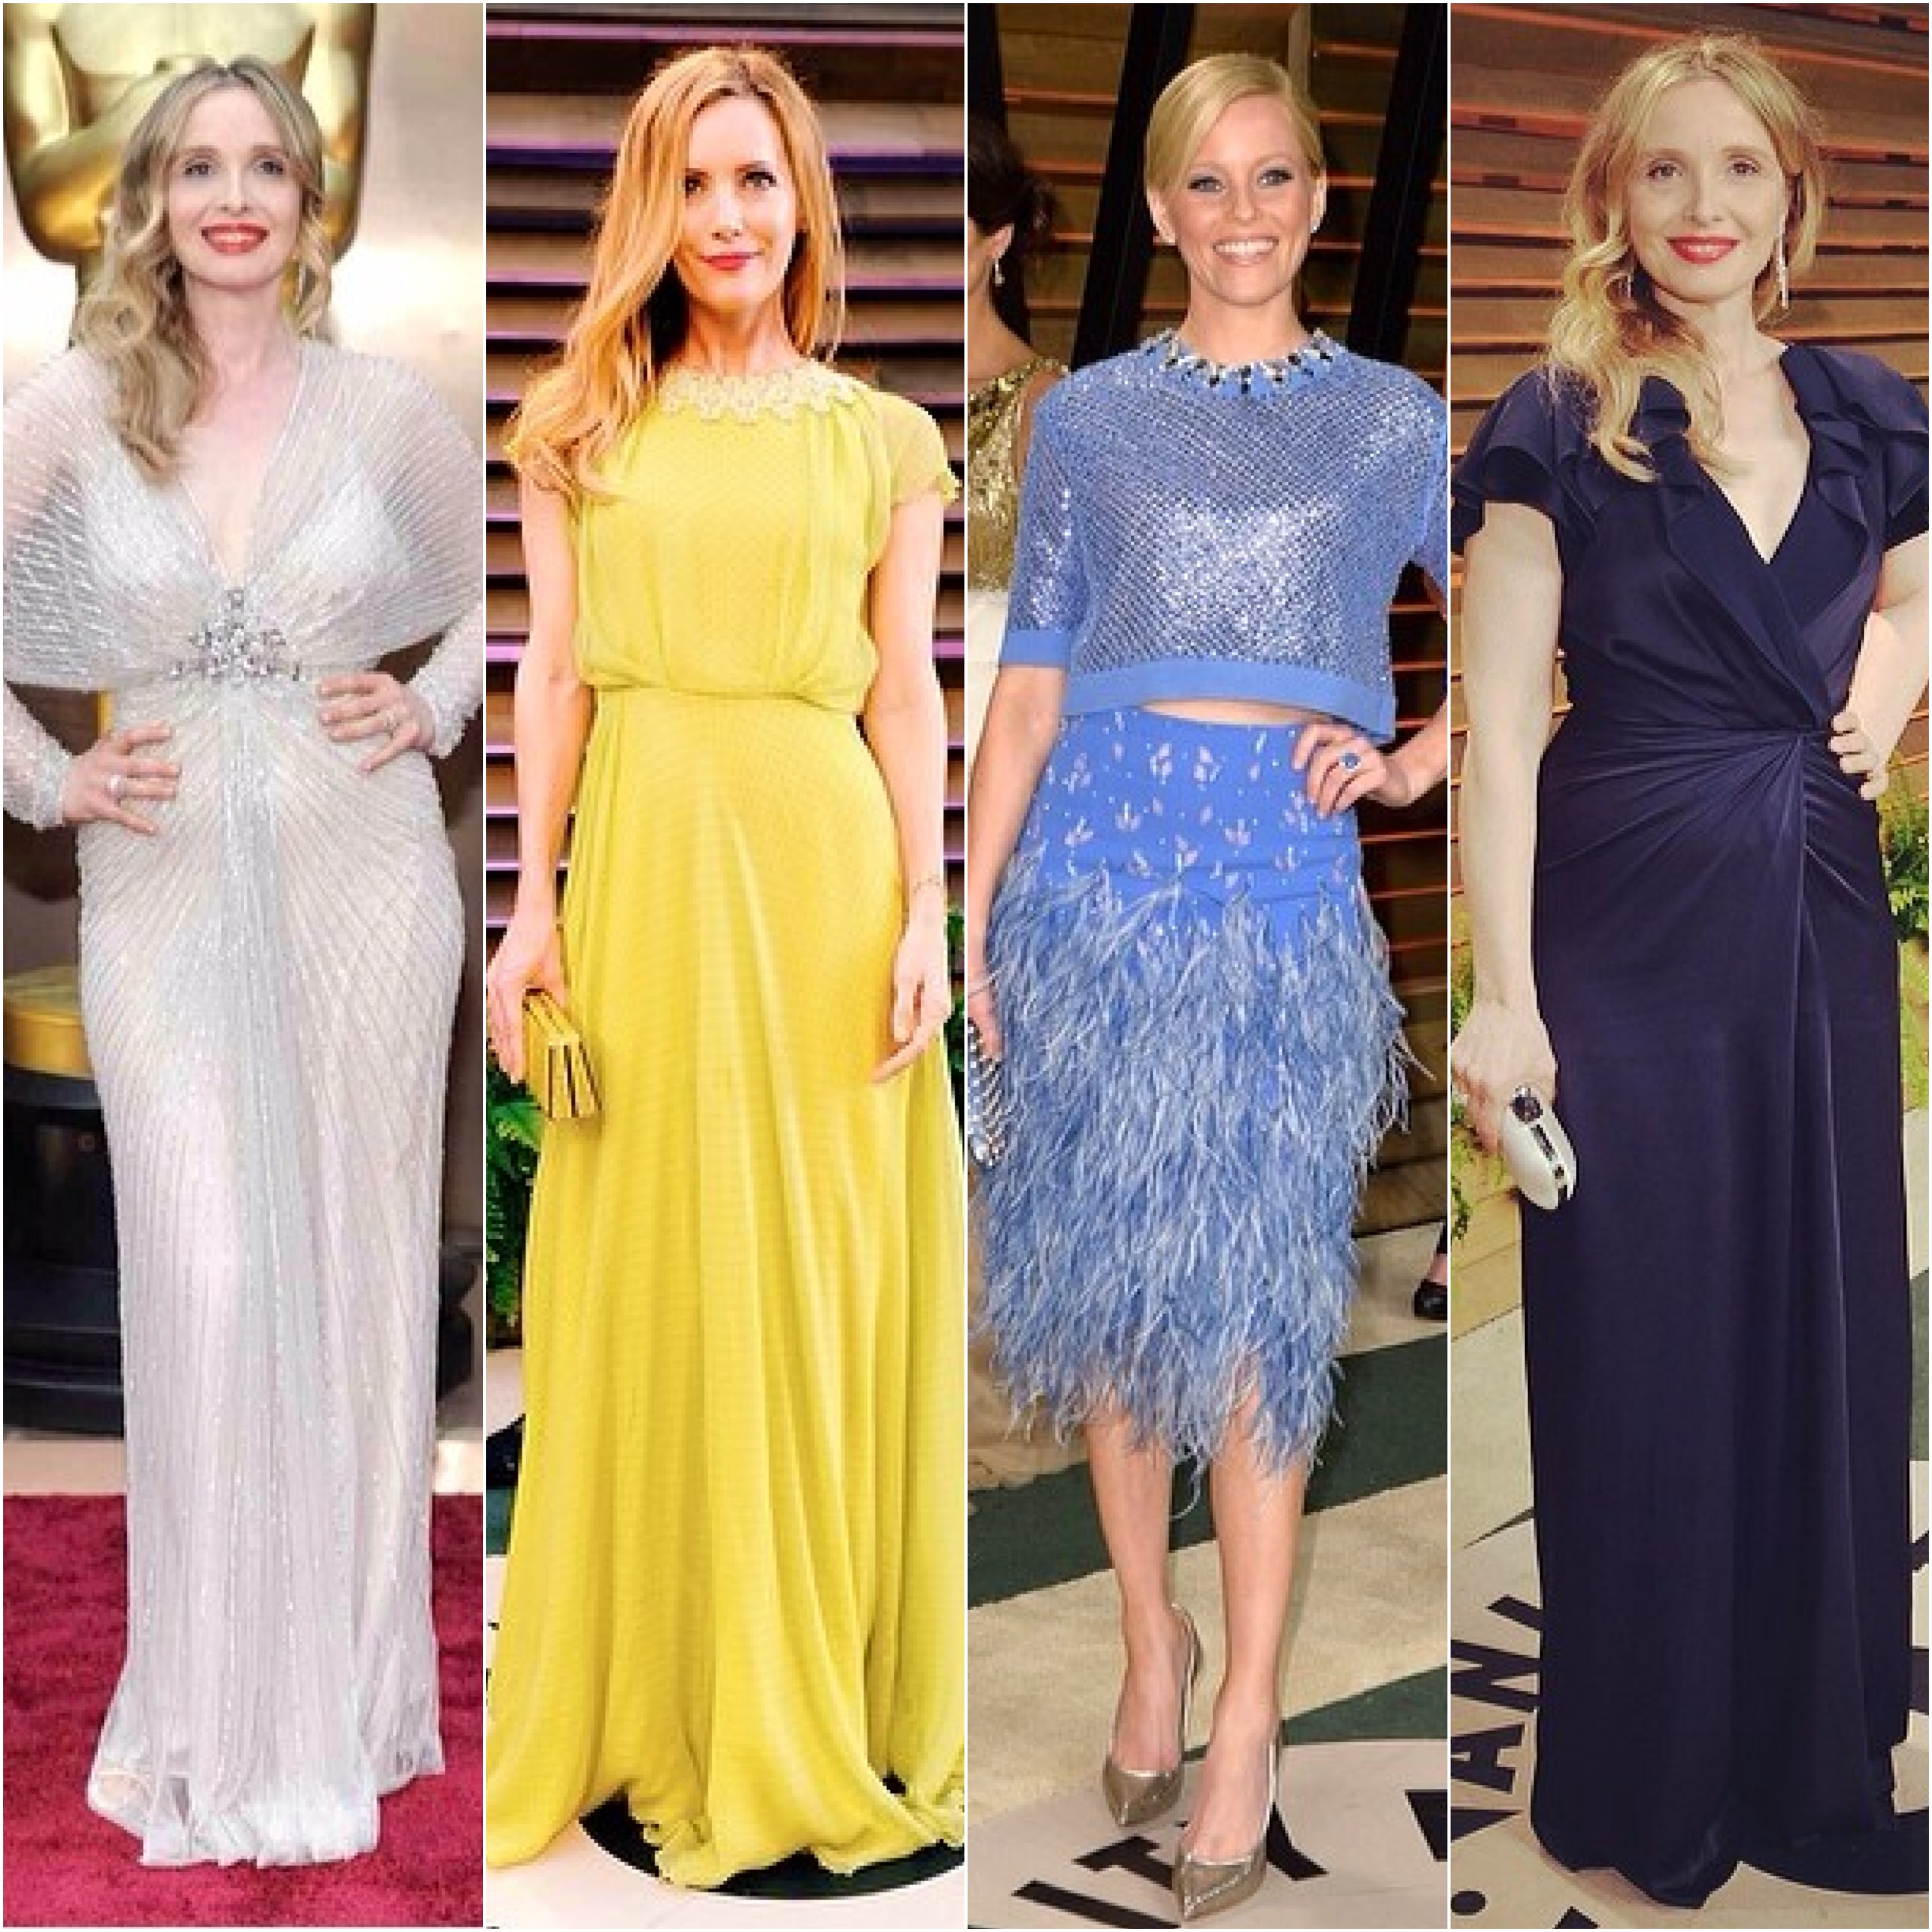 In Jenny Packham: Julie Delpy, Leslie Mann, Elizabeth Banks, and again Julie Delpy